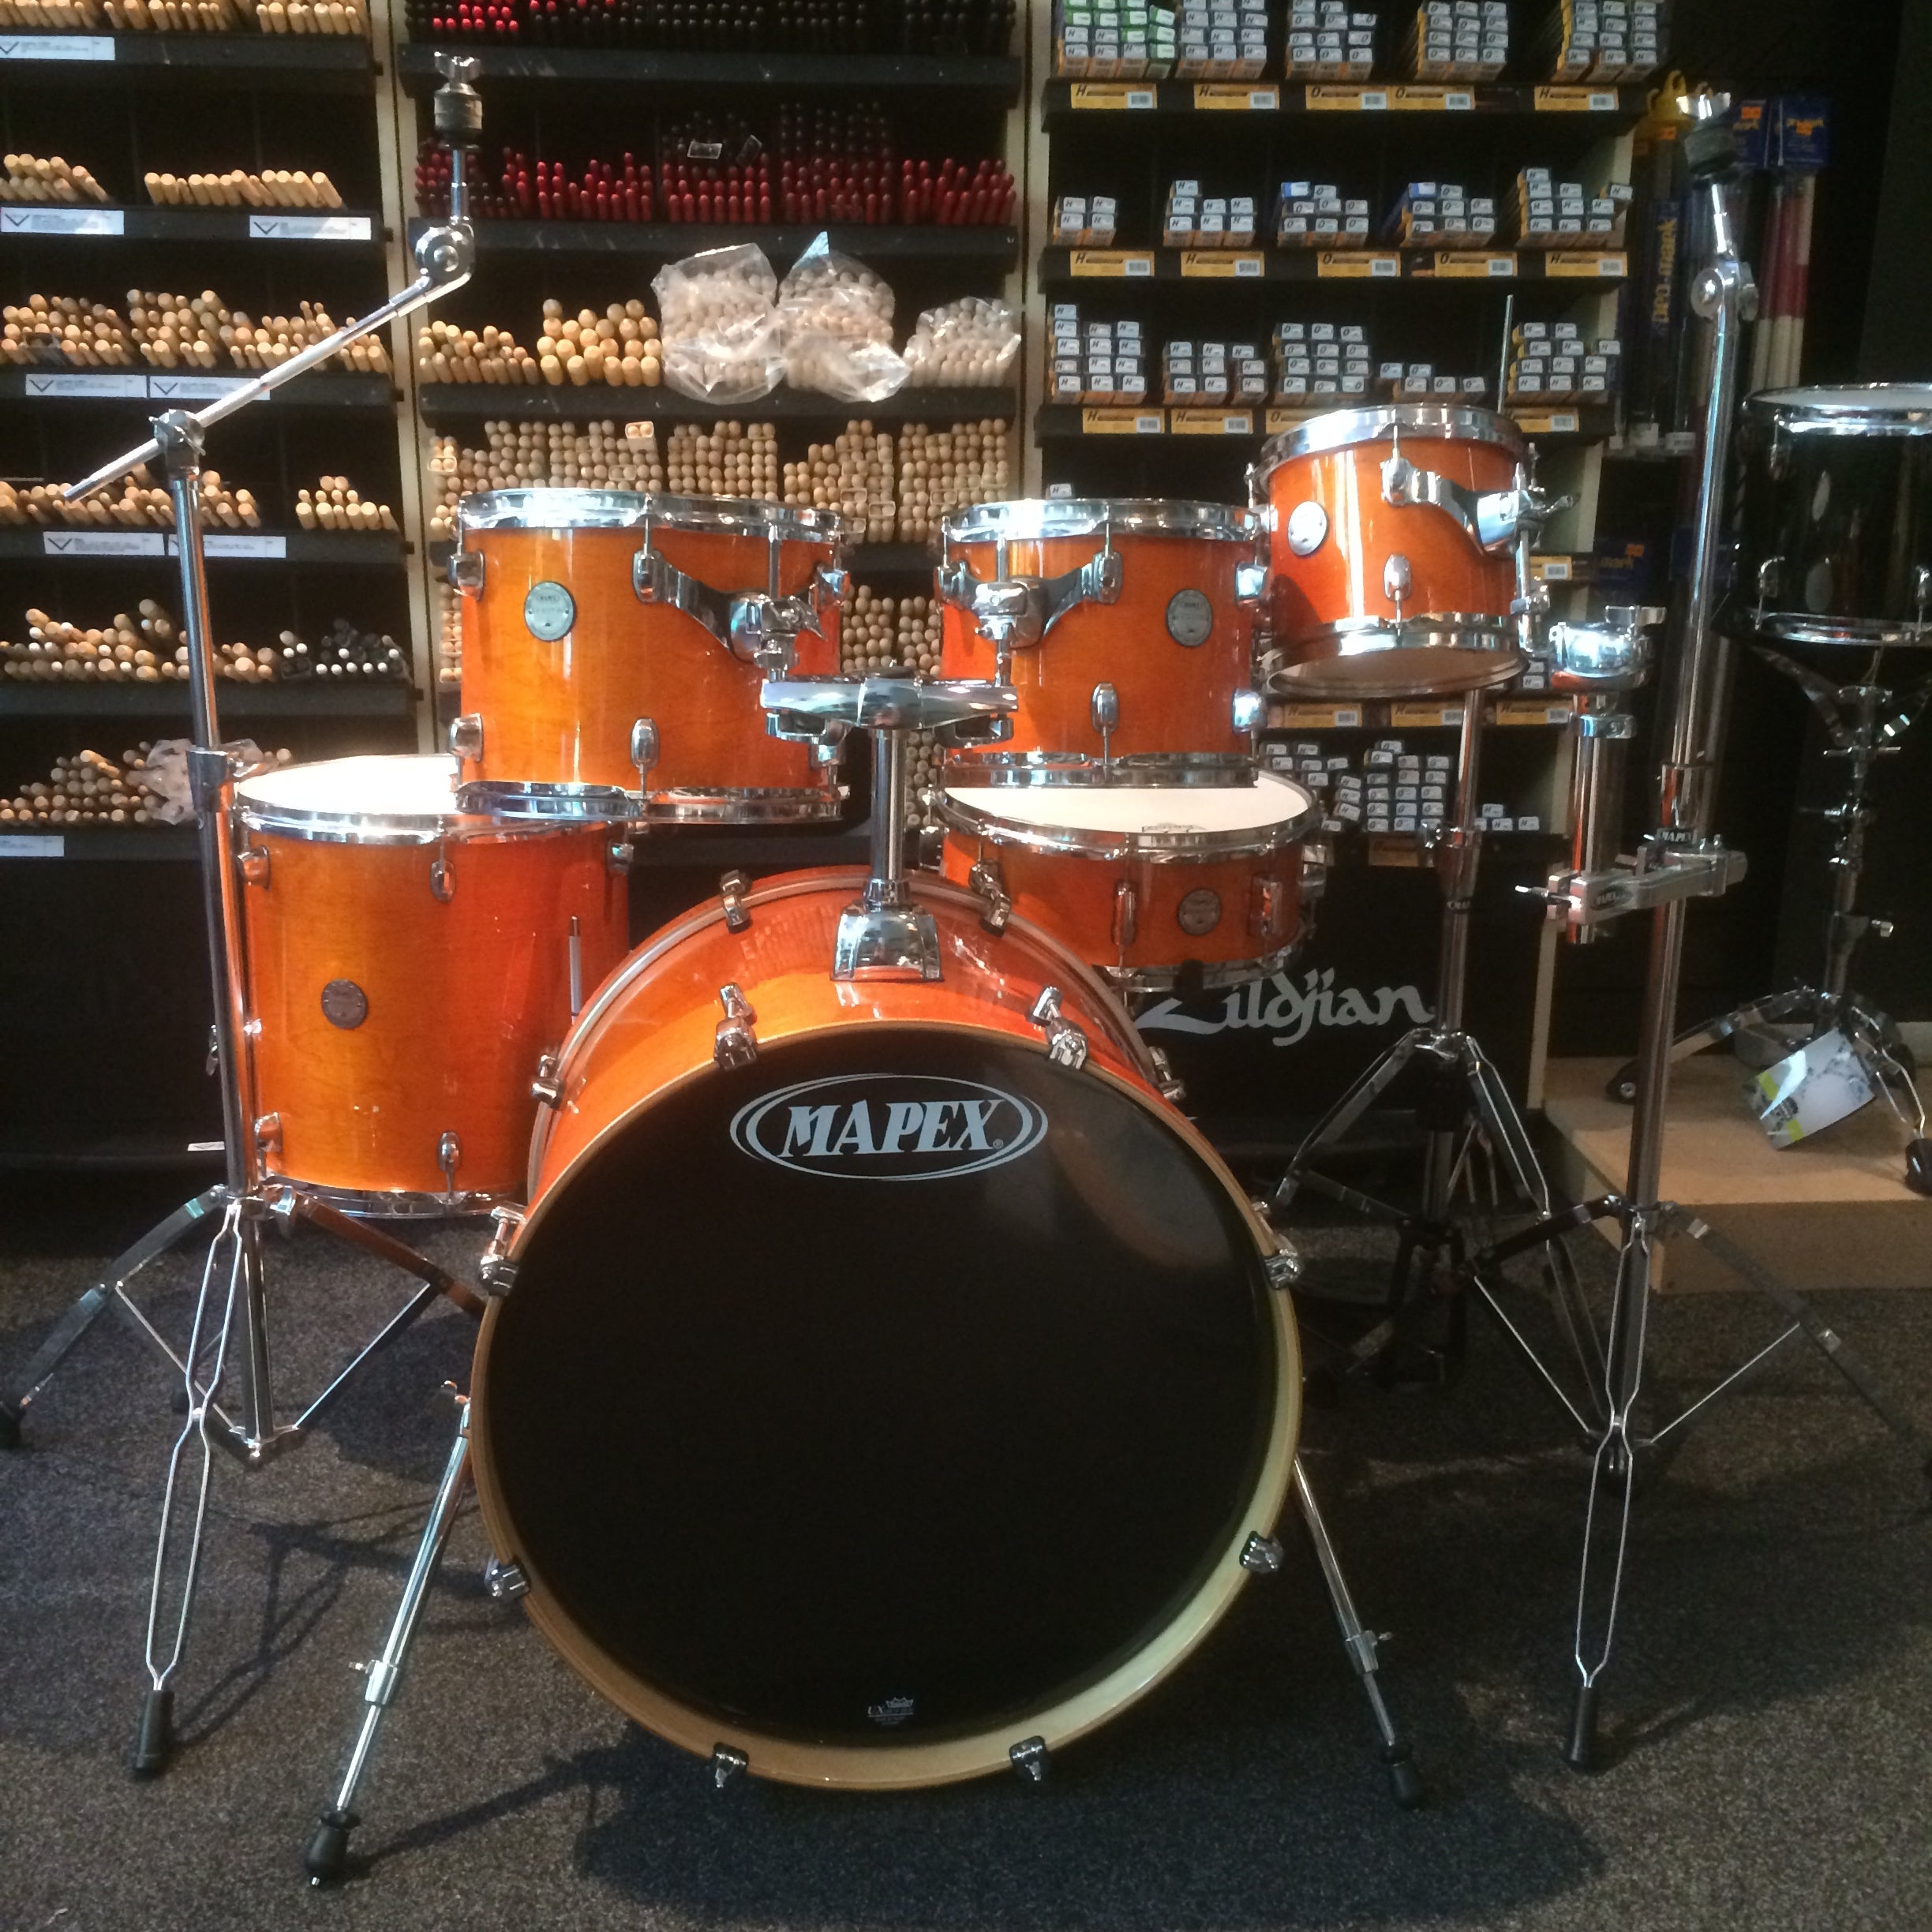 Mapex Orange drum kit